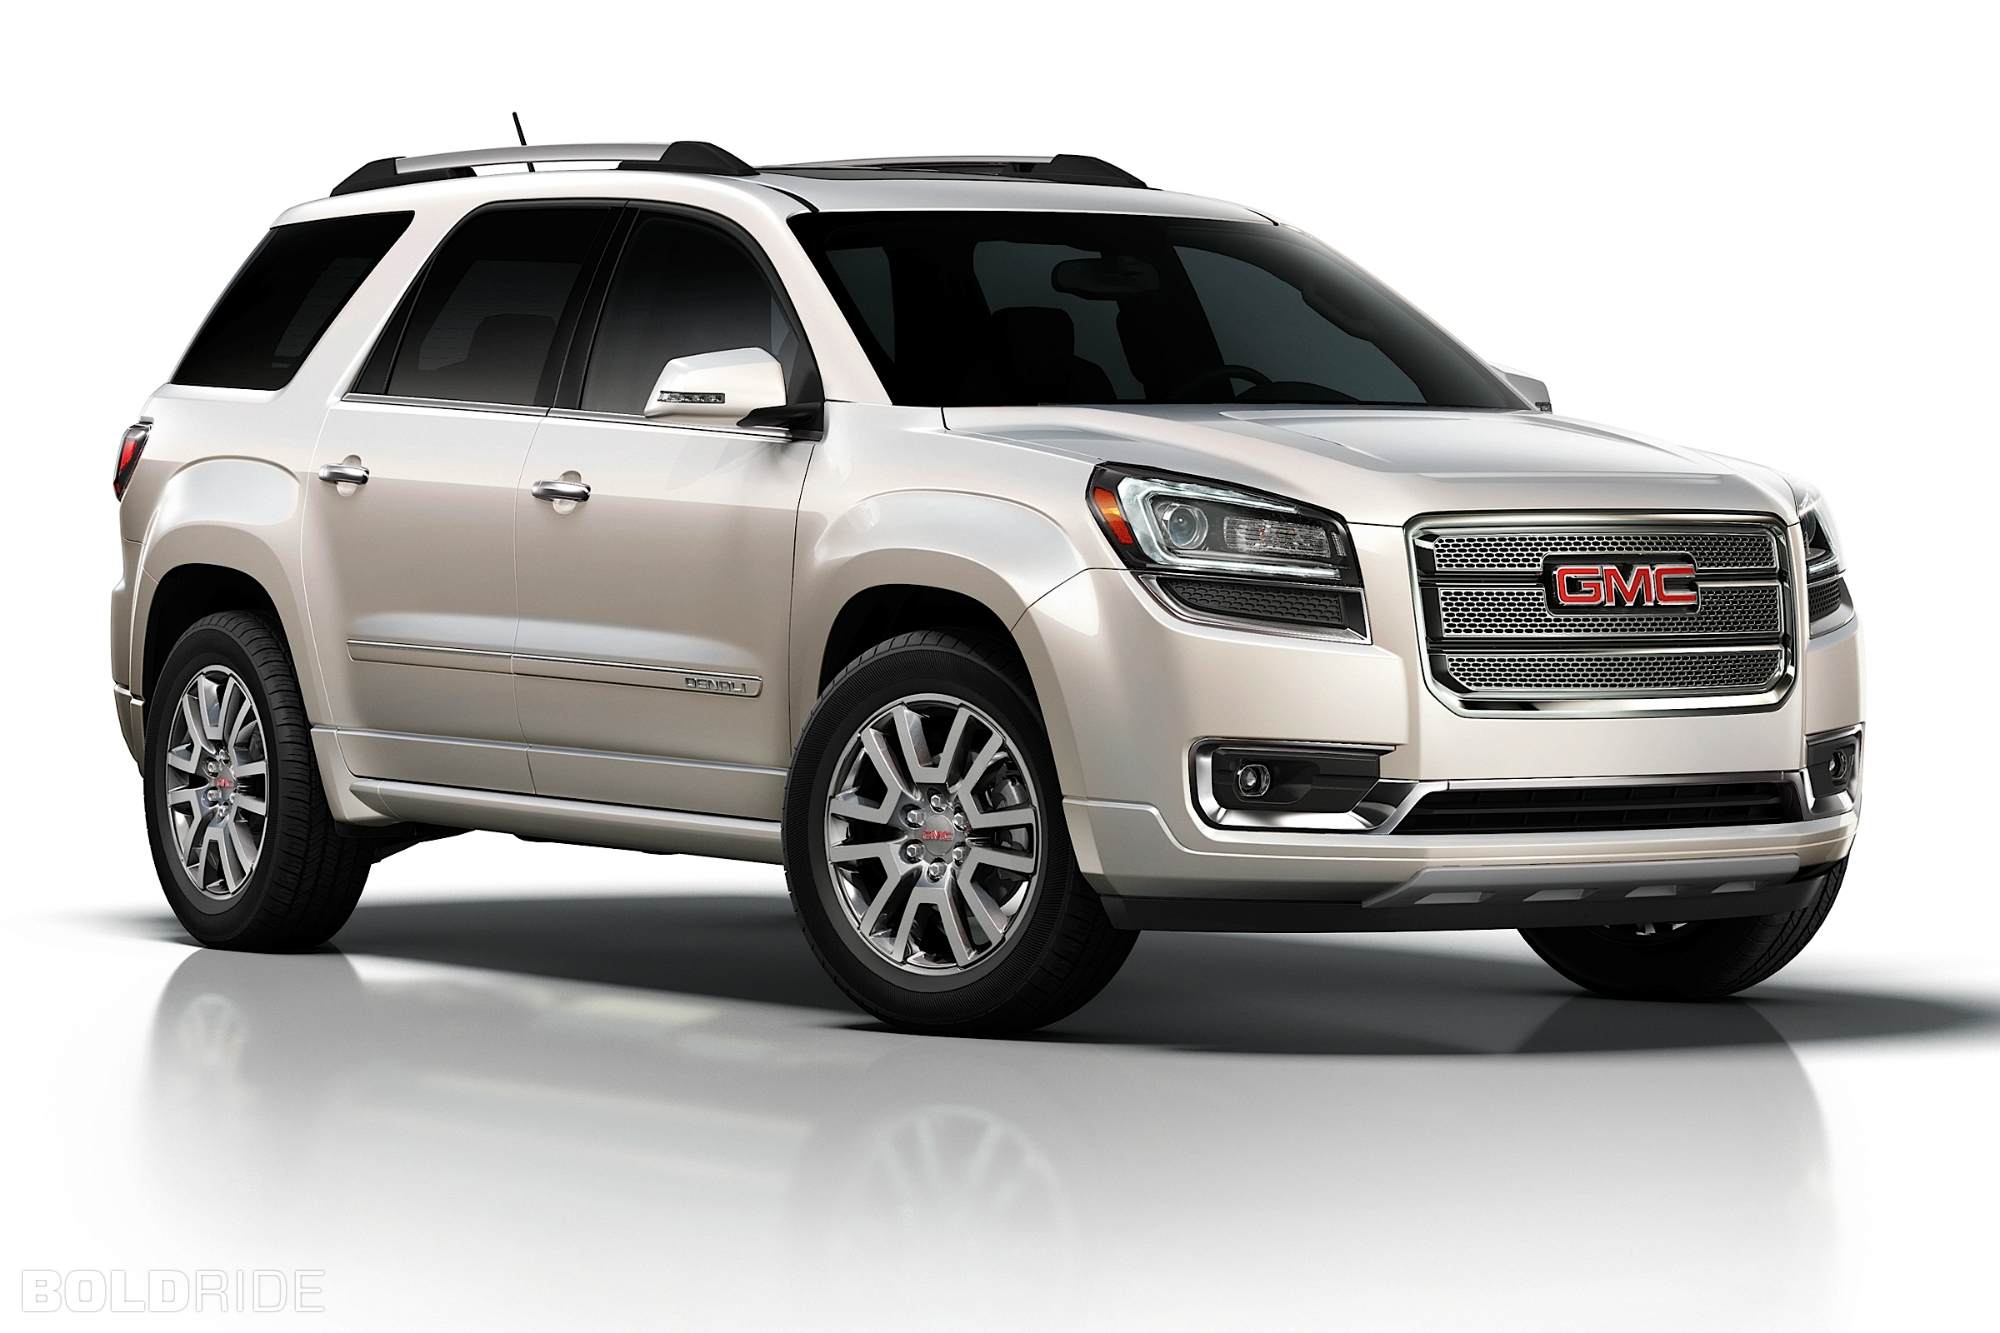 2013 Gmc Acadia Fuse Diagram Car Dodge Charger Wiring Buick Riviera Review And Photos Rh Roadsmile Com Panel Sierra